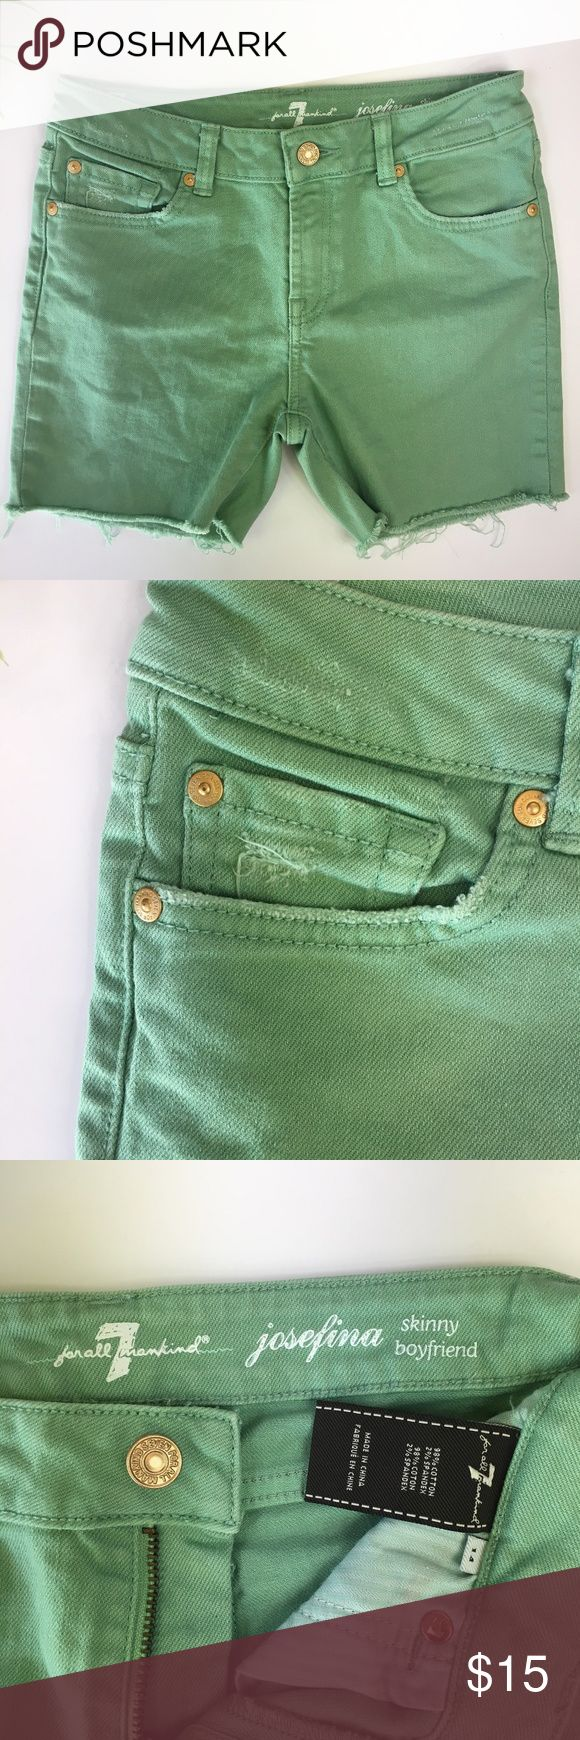 """7 FOR ALL MANKIND Girls Cut-Off Shorts {Sz 14} 7 For All Mankind Josefina jeans that have been cut into shorts. Pastel green with gold button and rivets. Zipper and button closure. Factory distressing. Perfect for back to school.  Gently Pre-Owned - No stains, tears or holes. Non-smoking household. Reasonable offers welcome!   Material: 98% Cotton, 2% Spandex  Approximate Measurements: (Taken from Seam to Seam)  Waist: 14"""" Front Rise: 8.5"""" Back Rise: 12"""" Inseam: 4"""" 7 For All Mankind Bottoms…"""